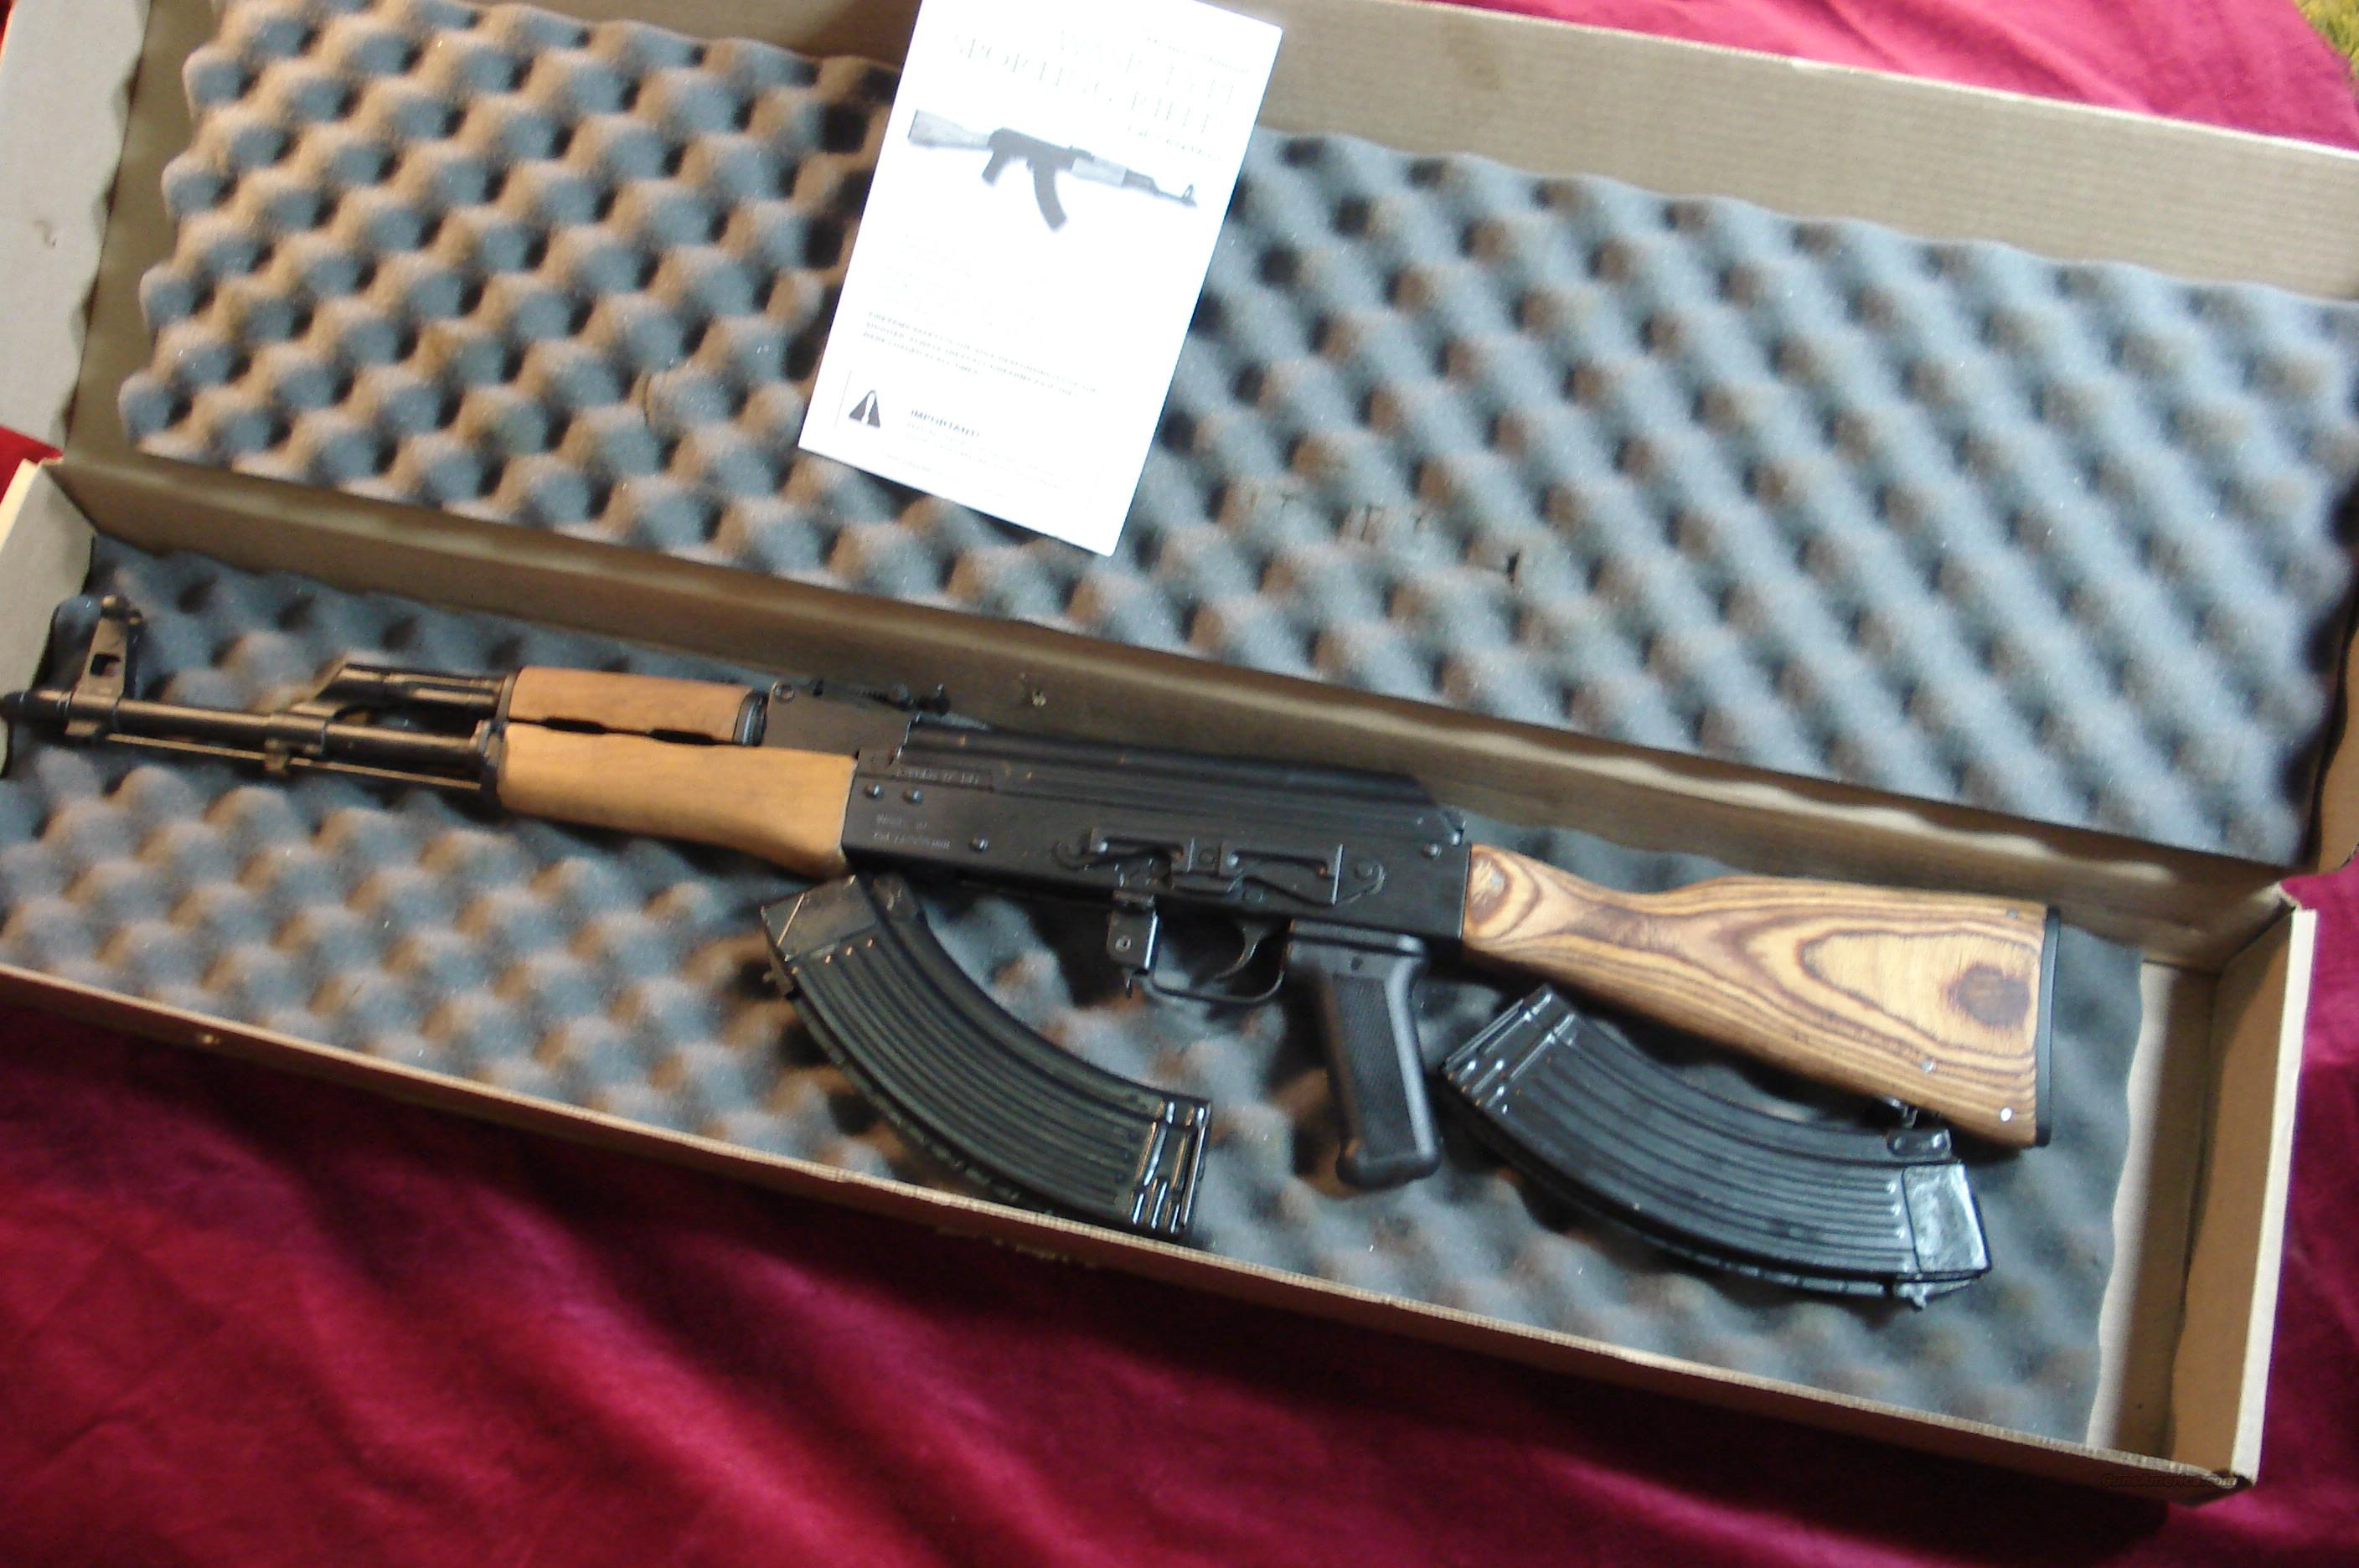 CENTURY INT'L ROMANIAN AK 47 FULL WOOD STOCK 7.62X39 CAL. W/SLANT BREAK NEW  Guns > Rifles > AK-47 Rifles (and copies) > Full Stock